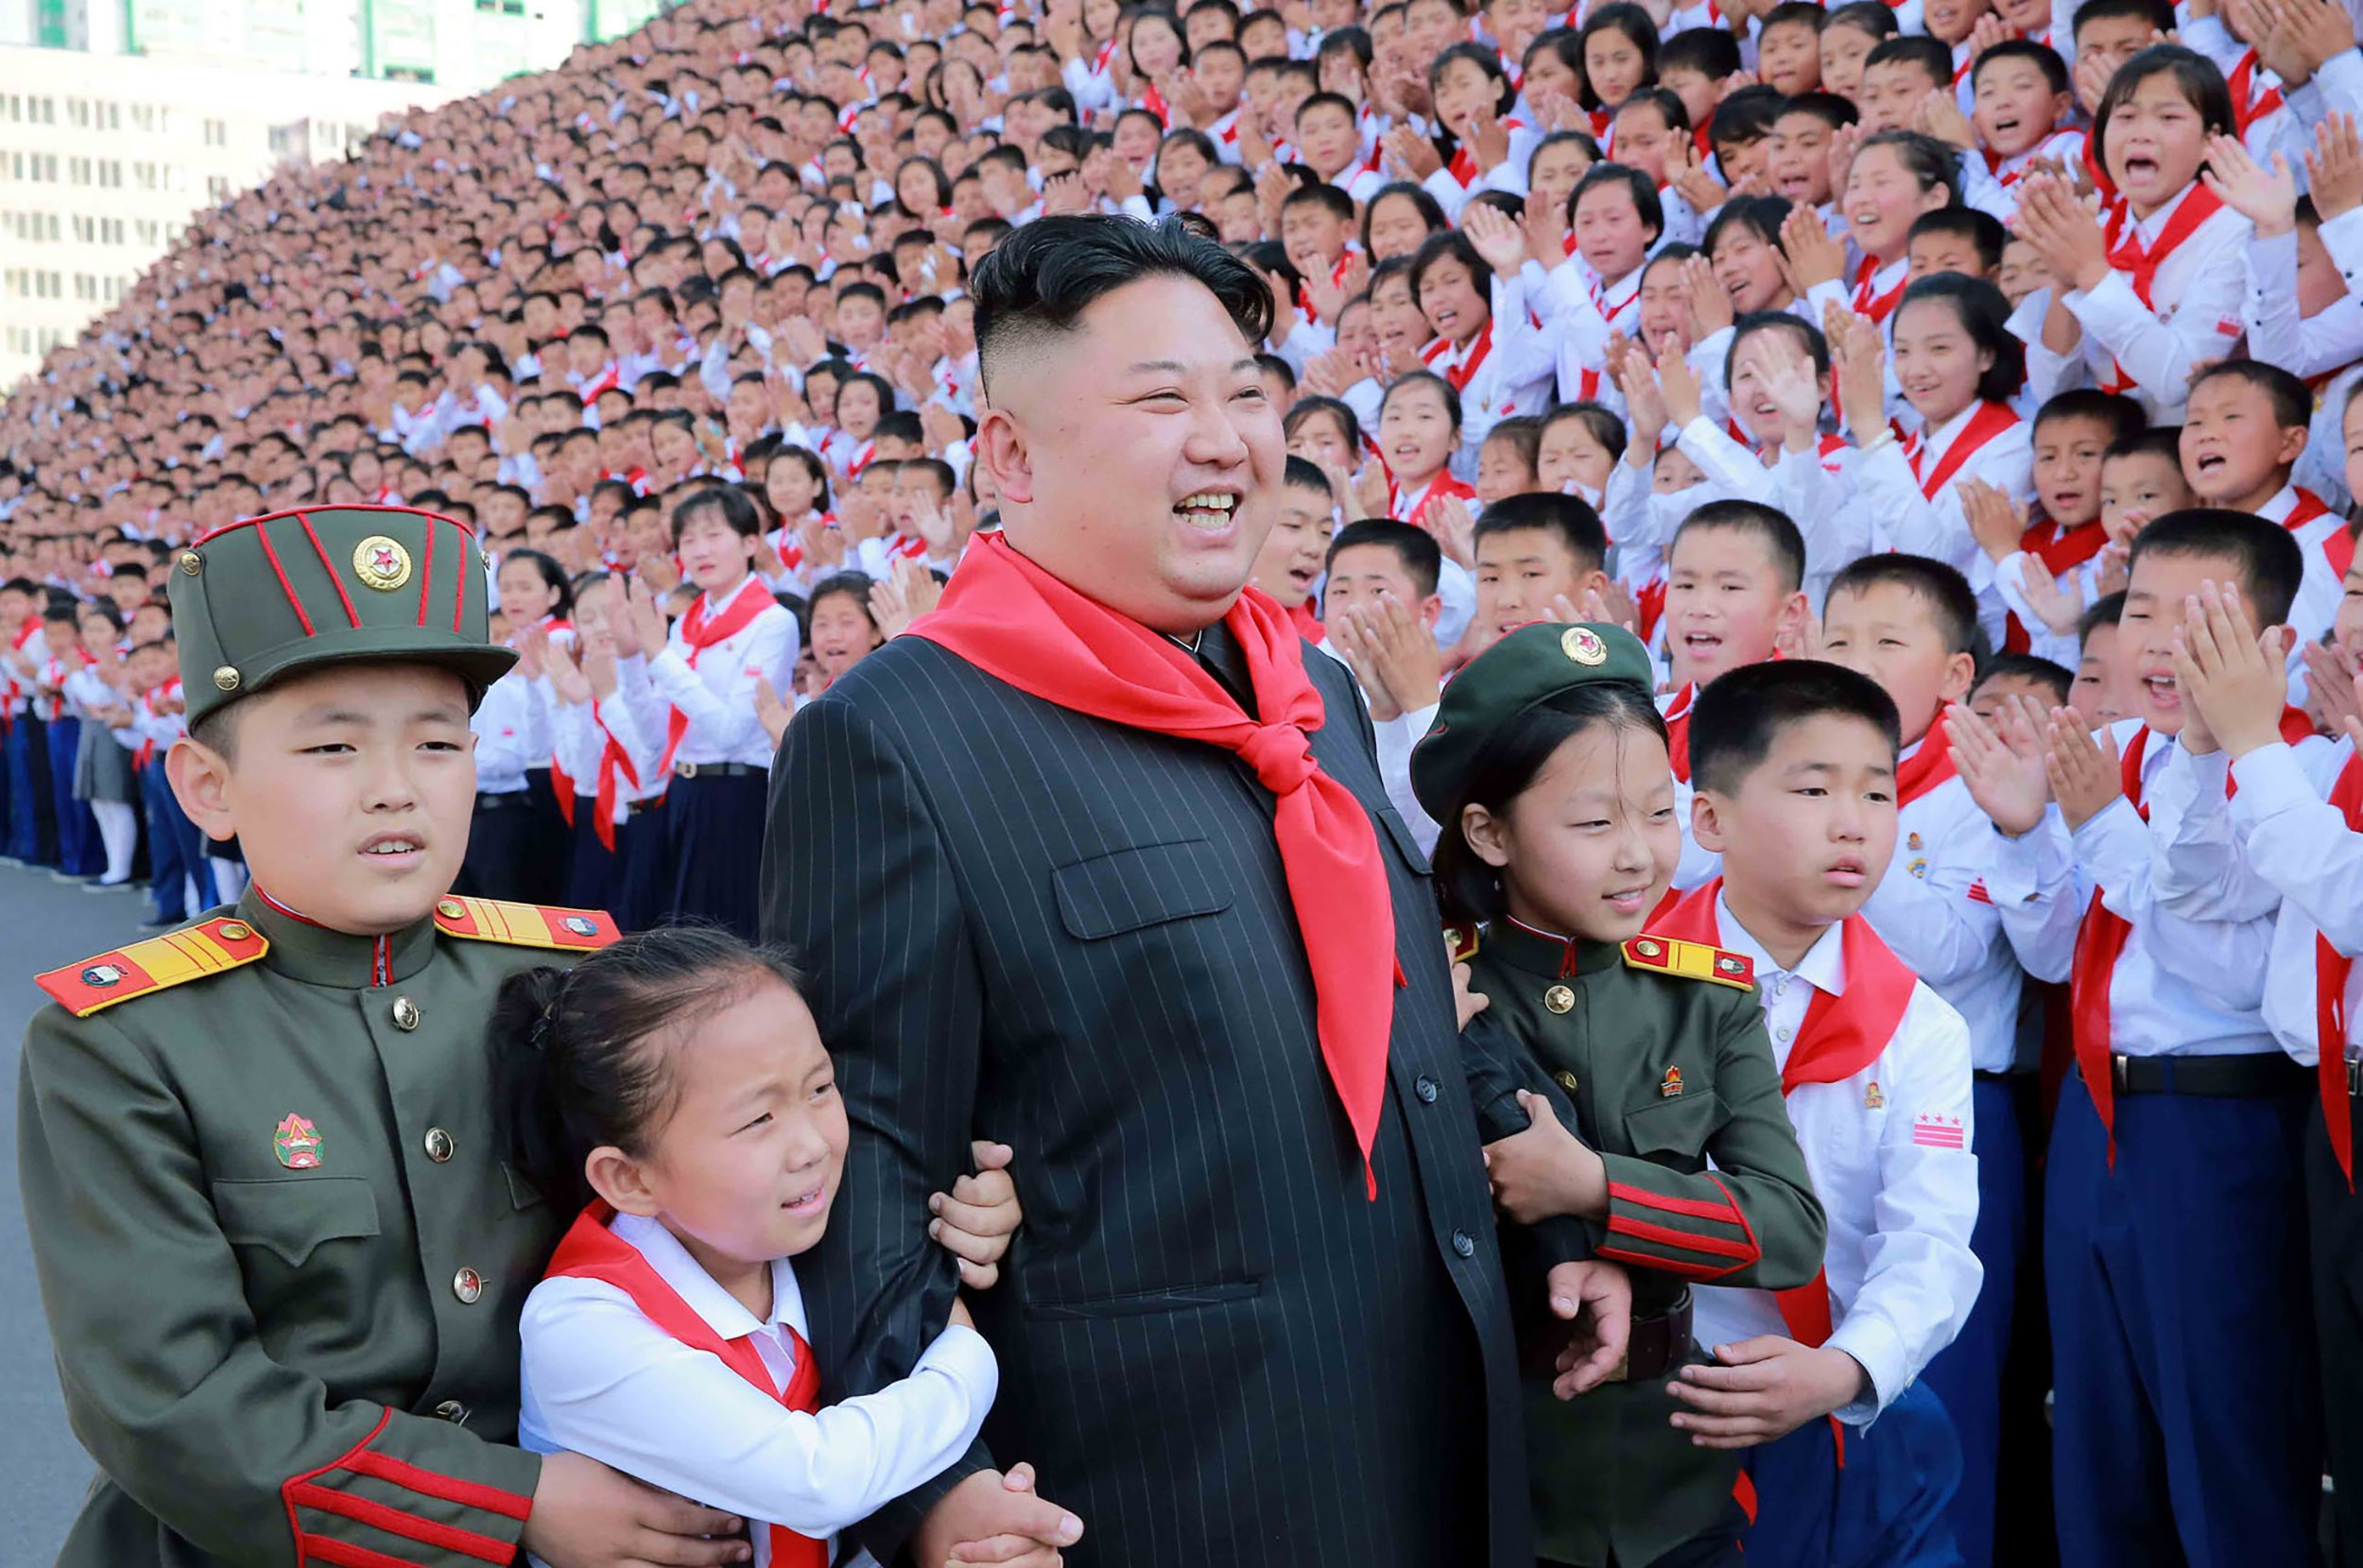 To topple Kim Jong Un, we should expel the children of Chinese elites from U.S. universities